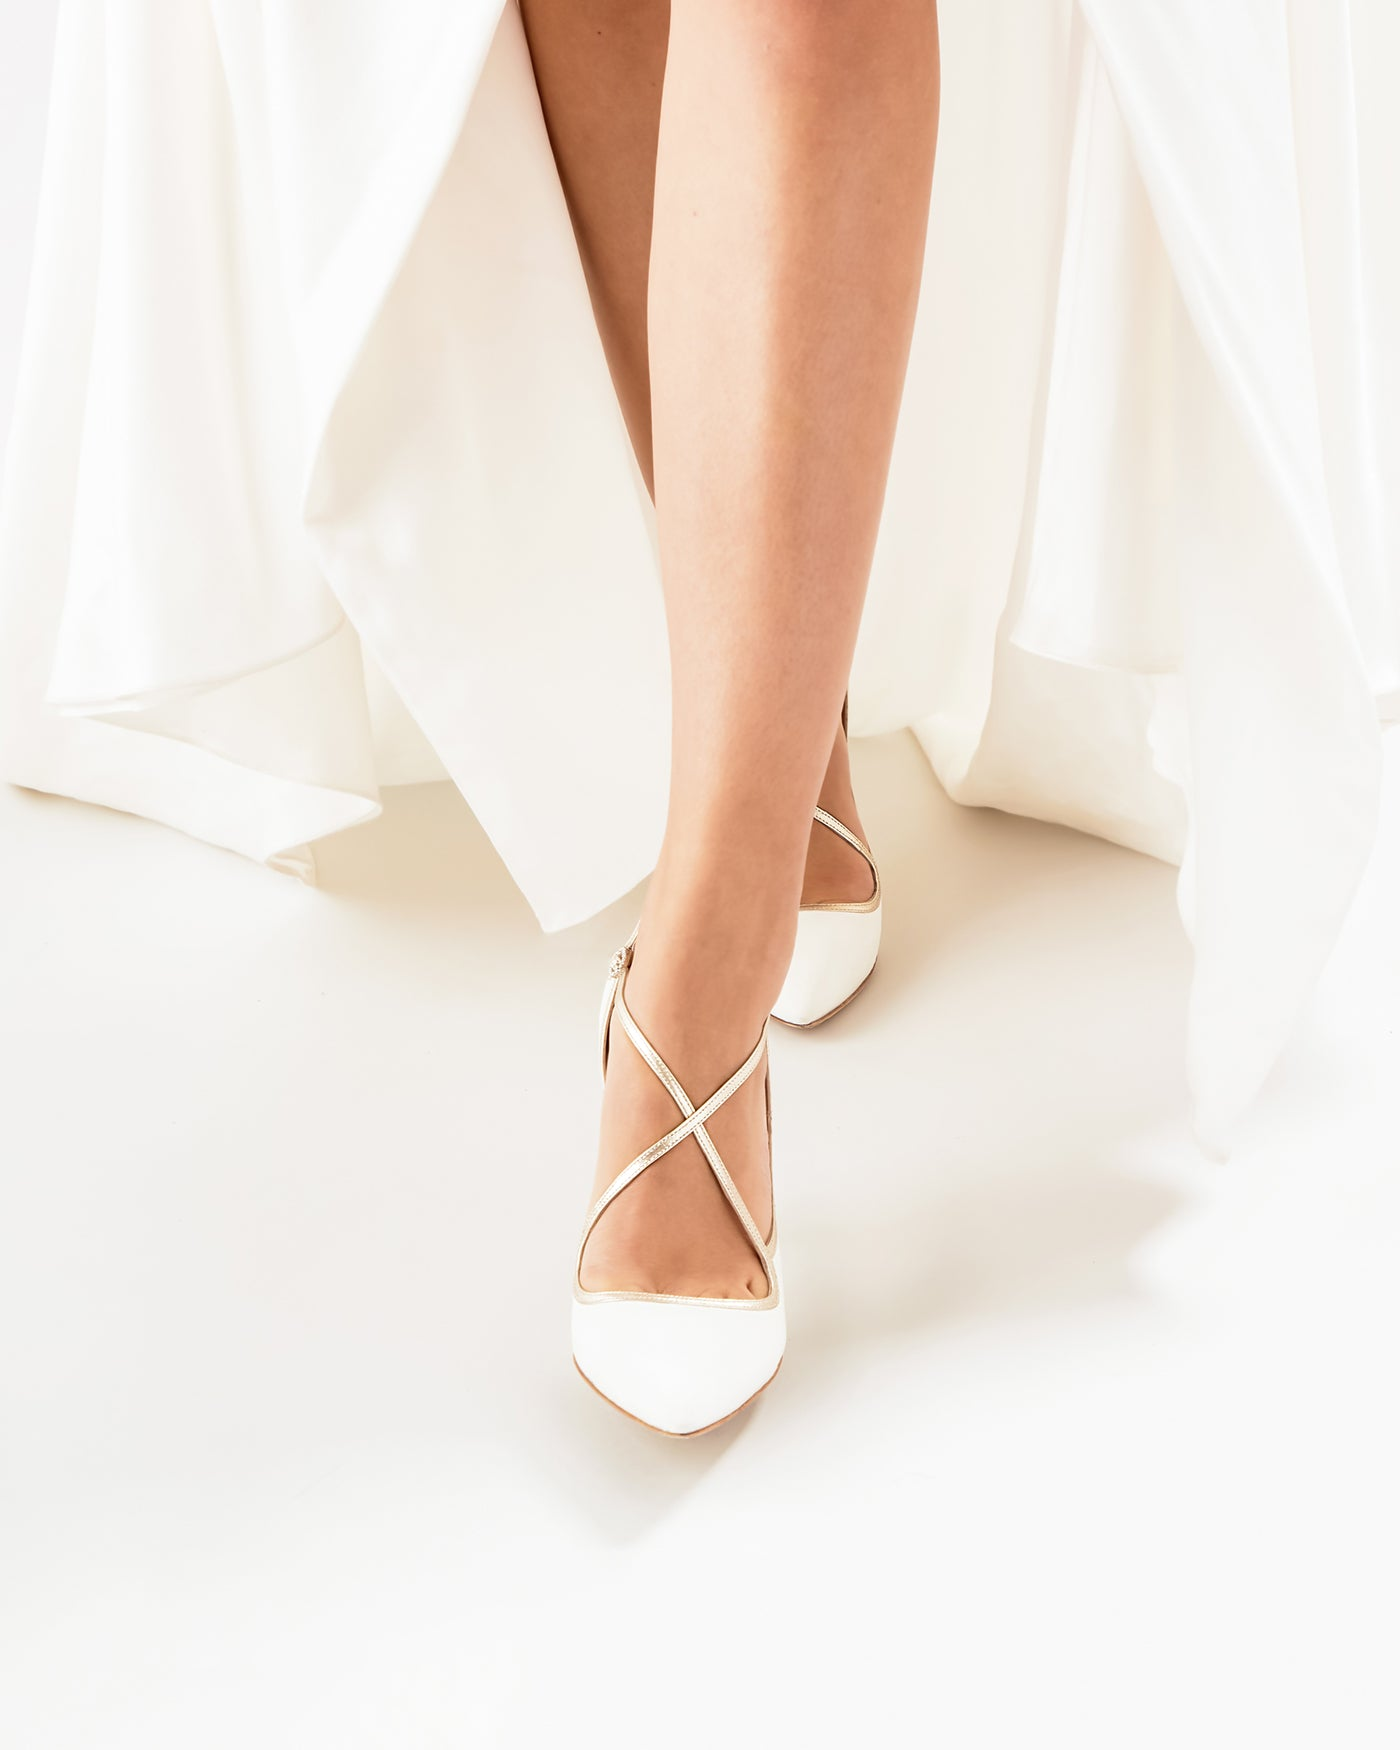 Charlotte Ivory and Gold Wedding Shoes For Dancing by Emmy London